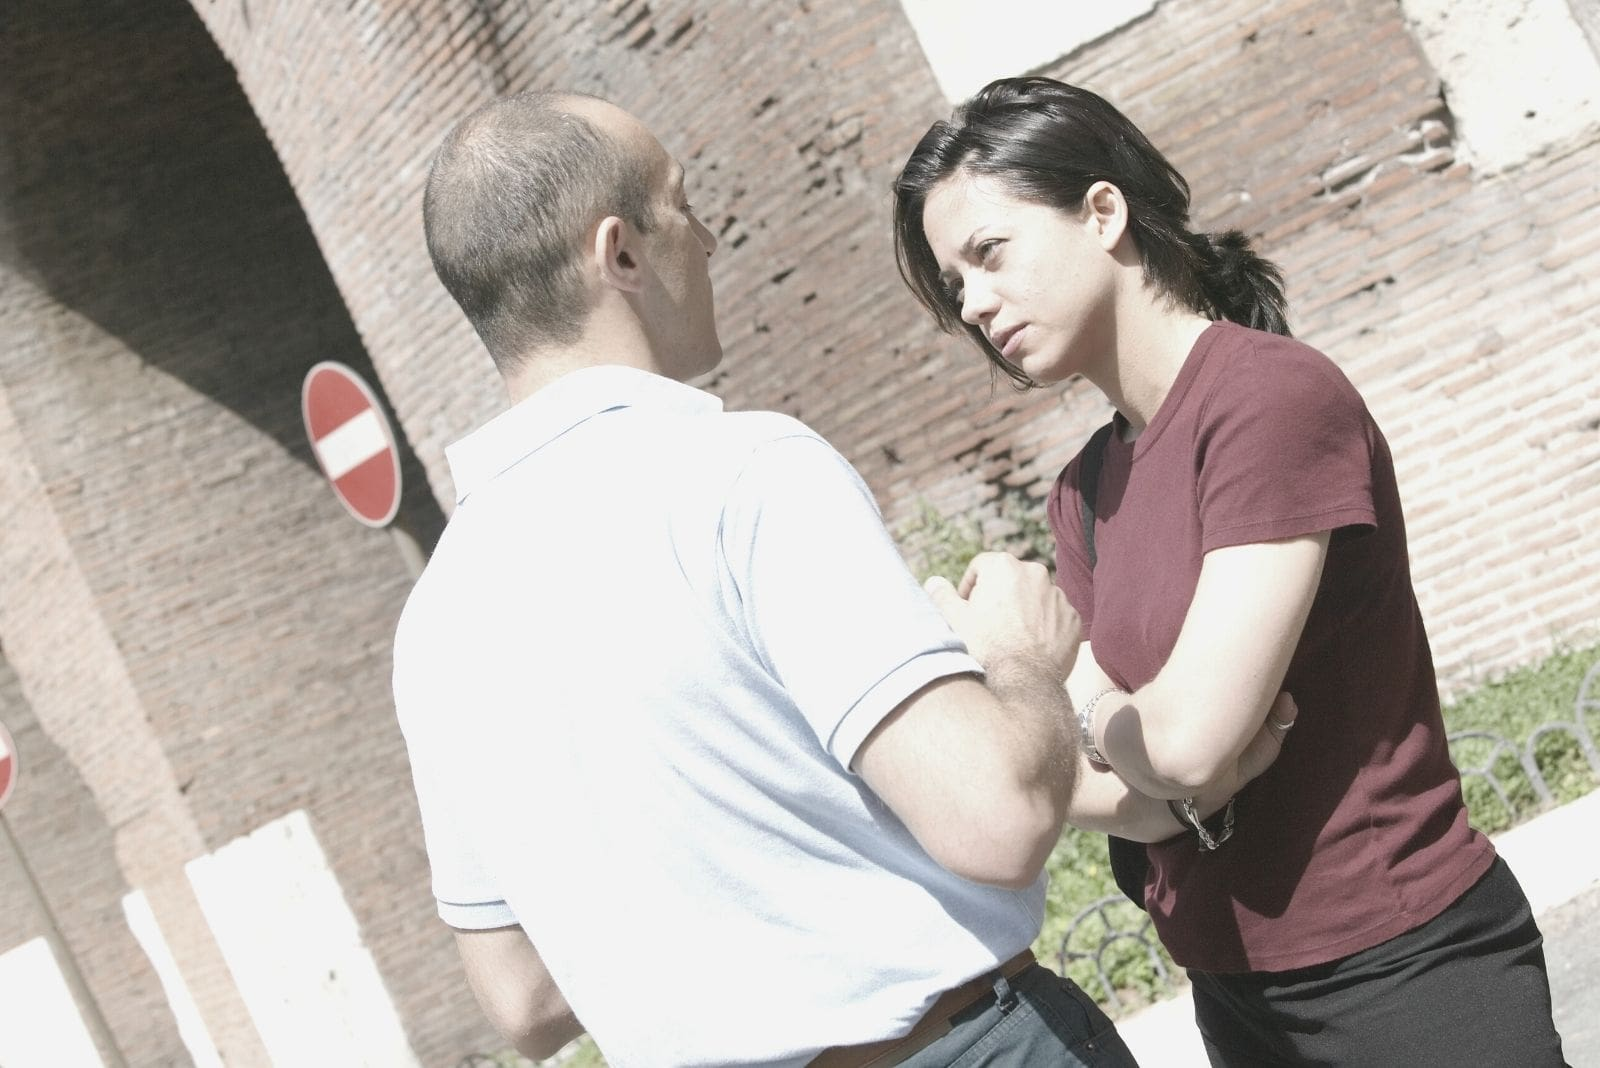 couple arguing outside of the building with red brick walls